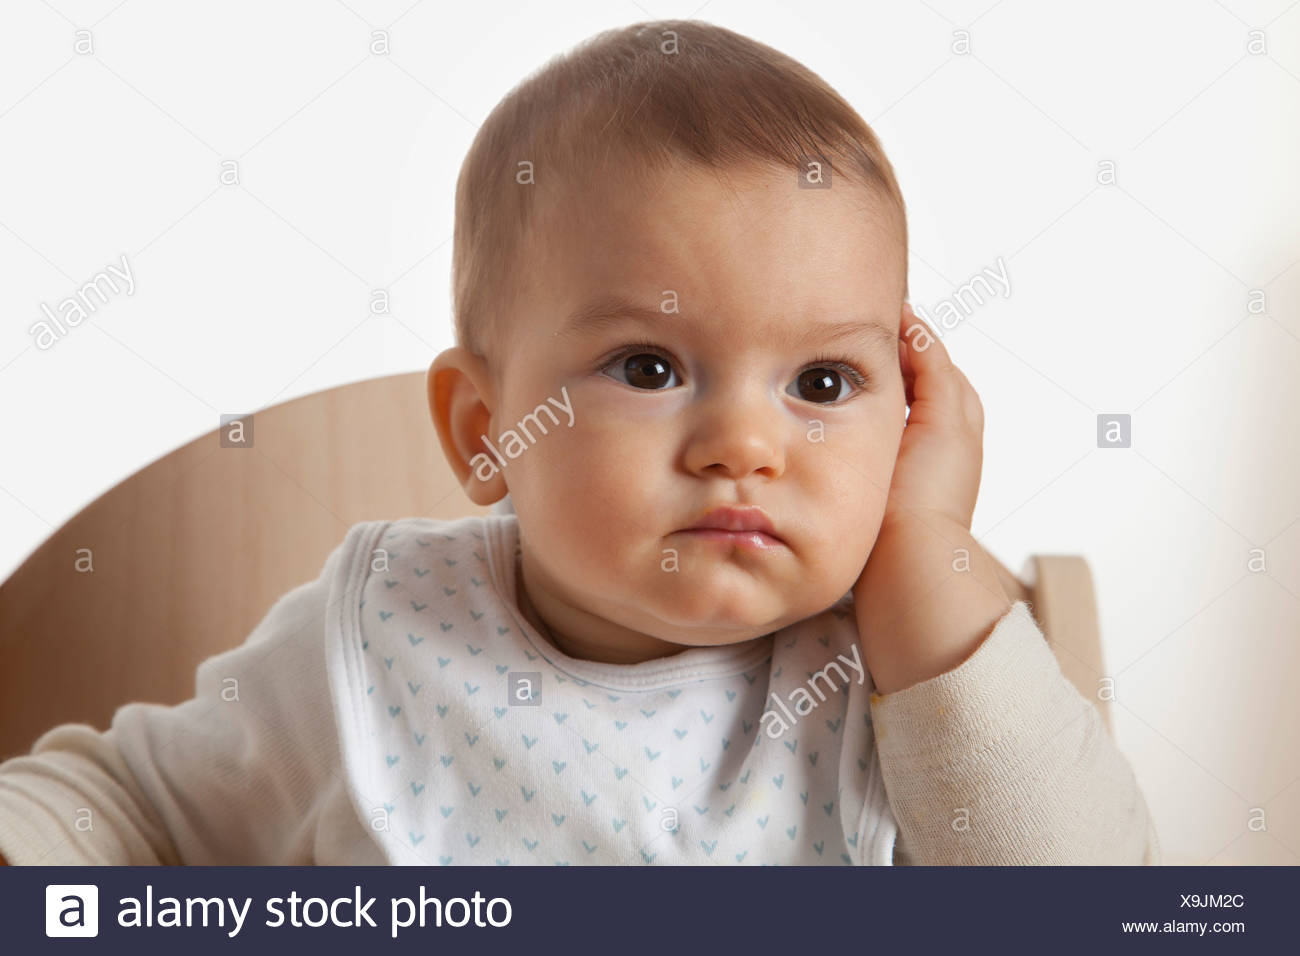 portrait of baby in high chair looking astonished - Stock Image